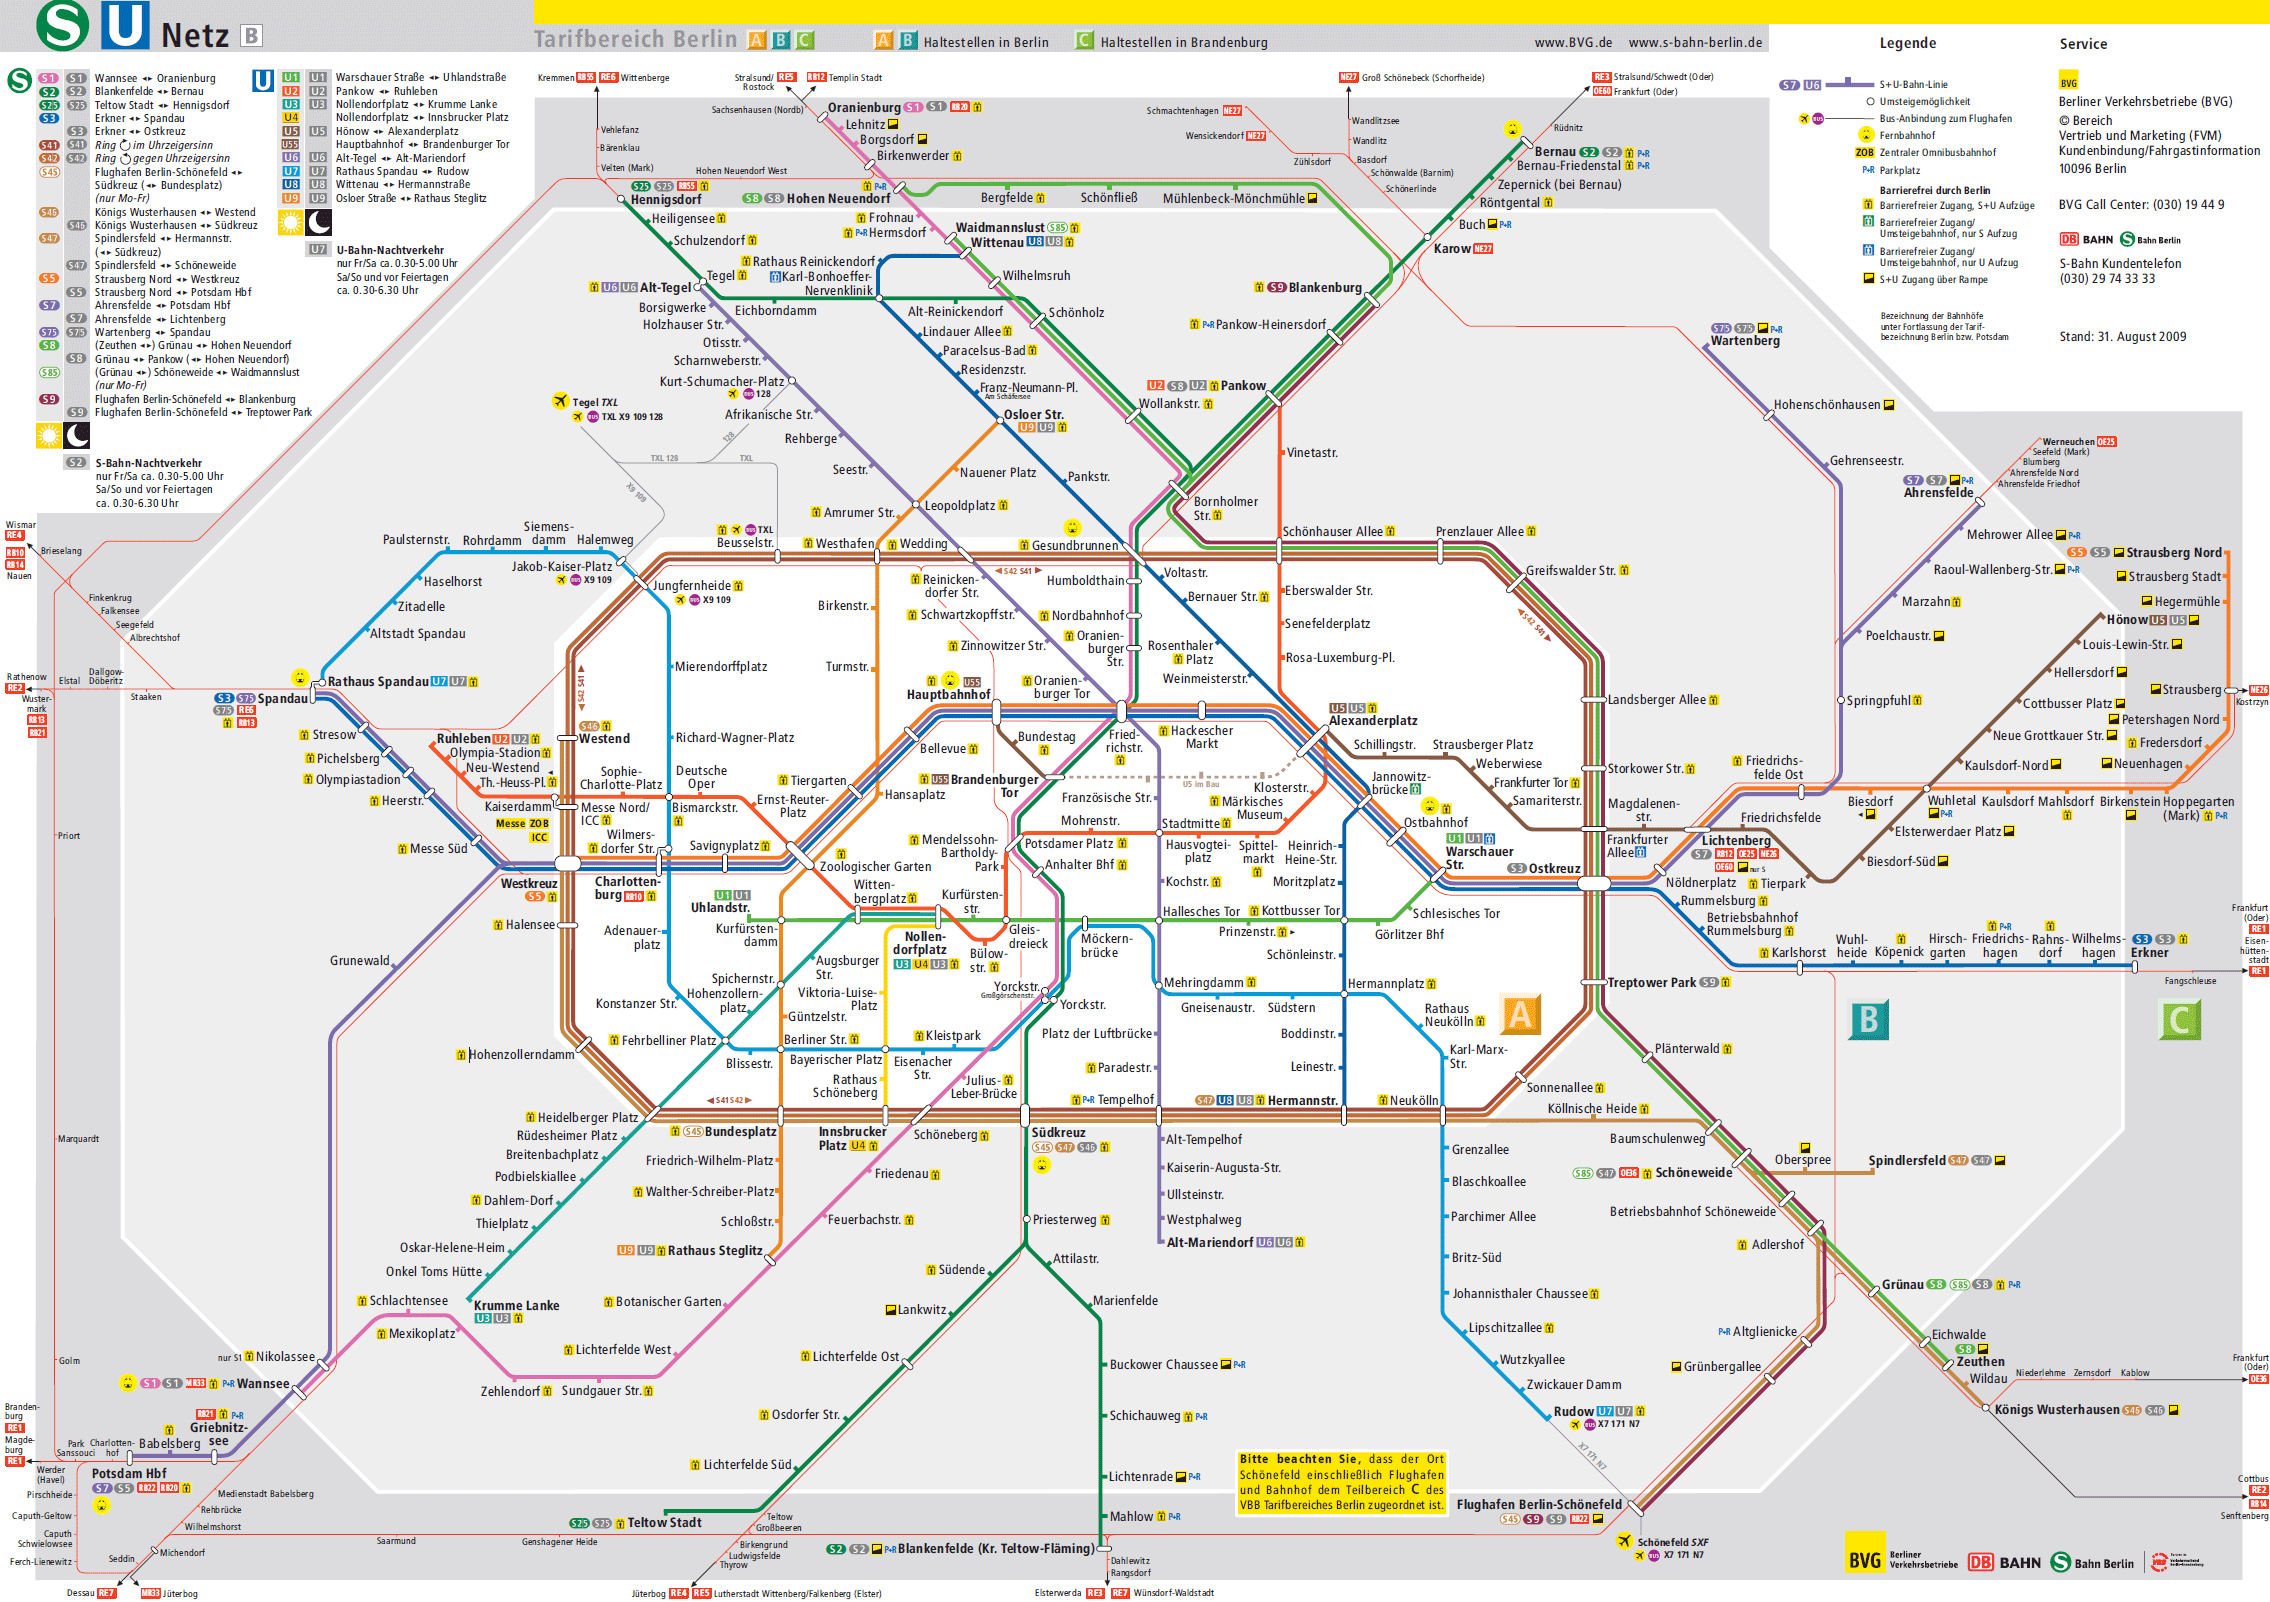 Berlin Metro U Bahn Lines schedule and fares